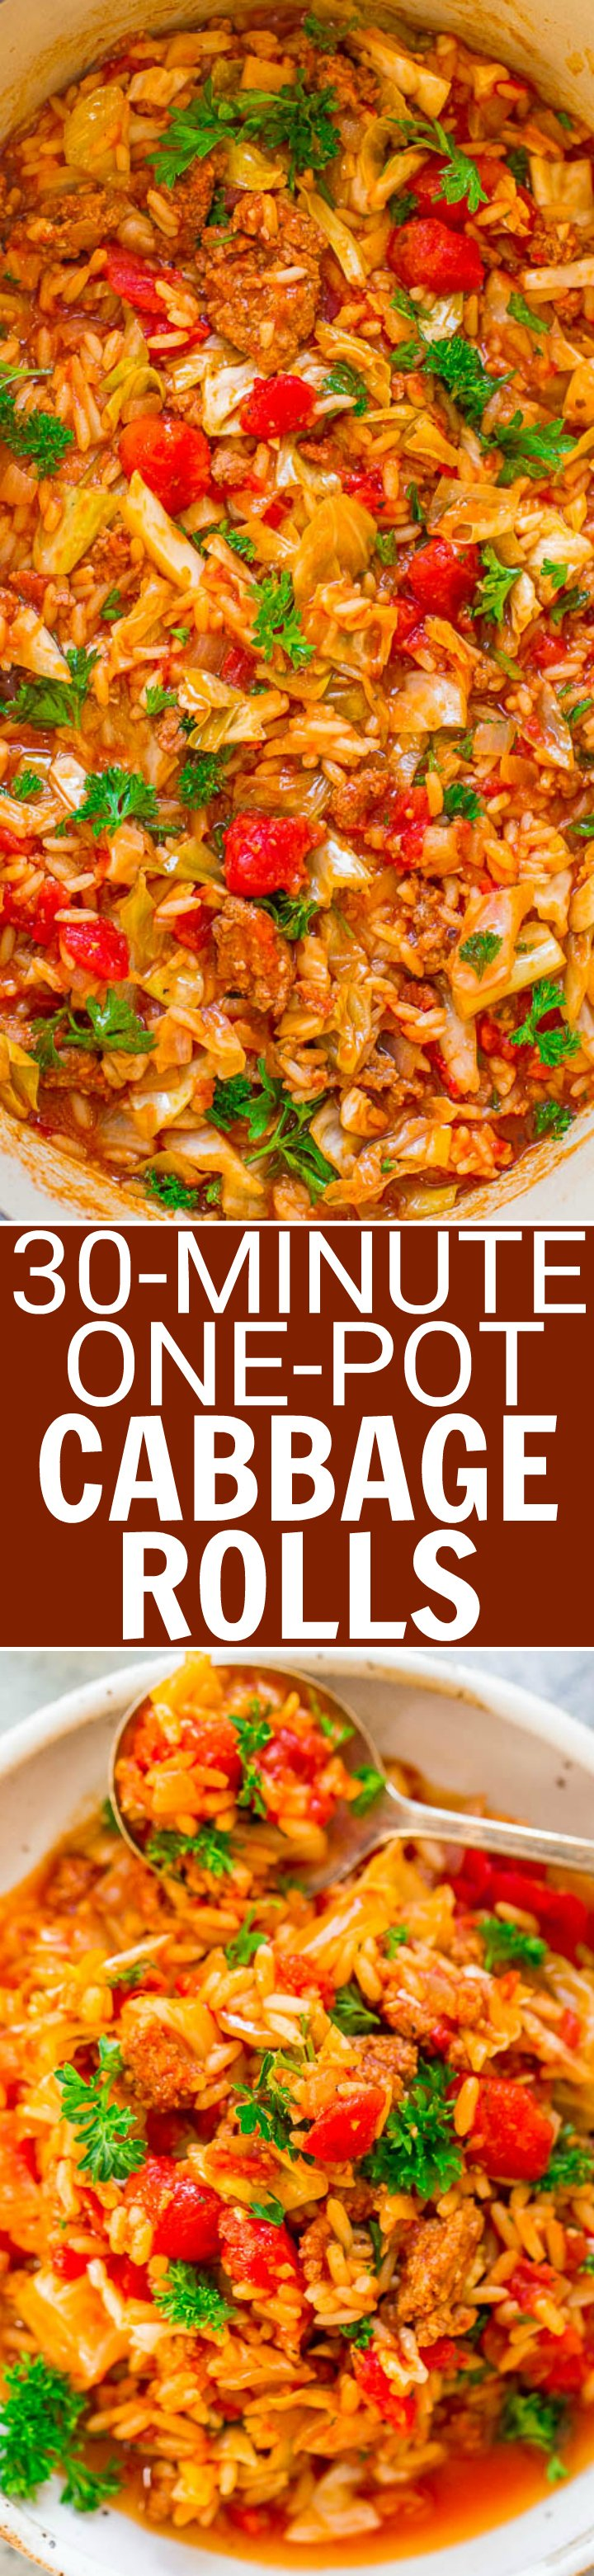 30-Minute One-Pot Cabbage Rolls - An EASY recipe for deconstructed cabbage rolls that's FAST and full of FLAVOR!! Tastes like the real thing, minus the work! Hearty comfort food that's perfect for busy weeknights!!